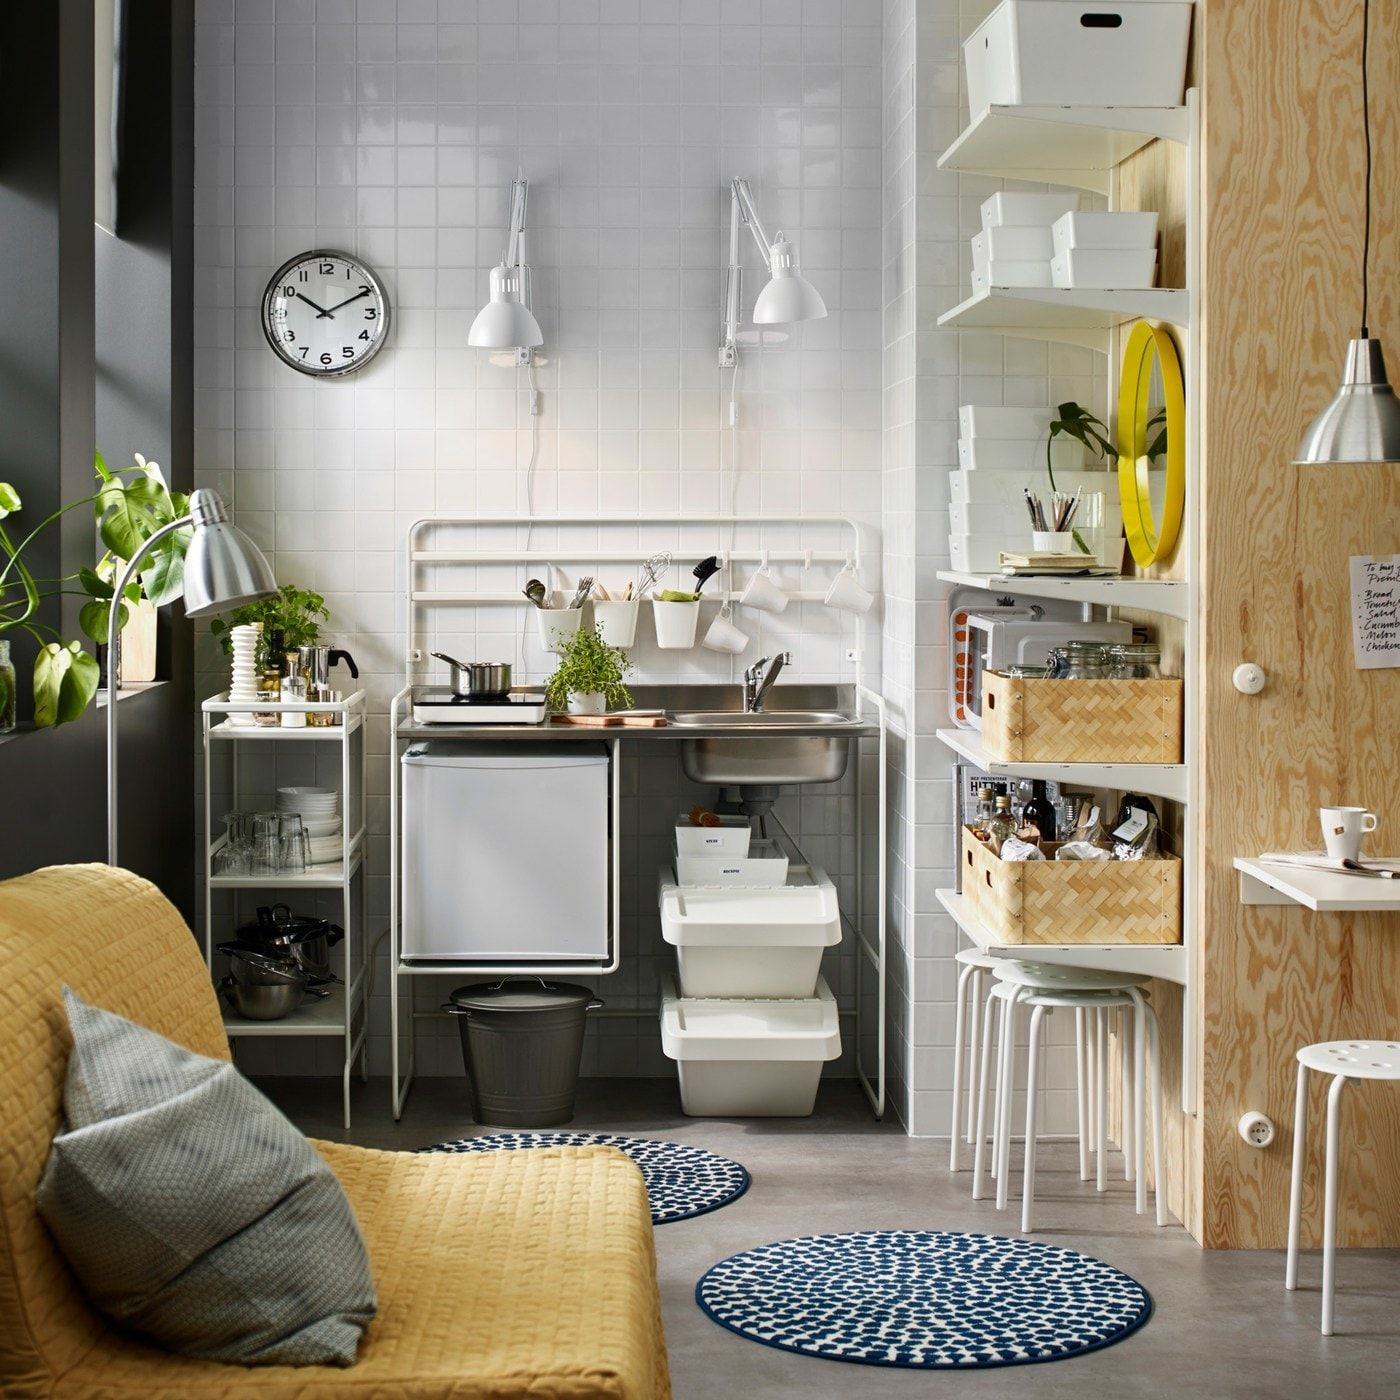 A Smart And Budget Friendly Small Space Kitchen Small Kitchen Storage Mini Kitchen Ikea Kitchen